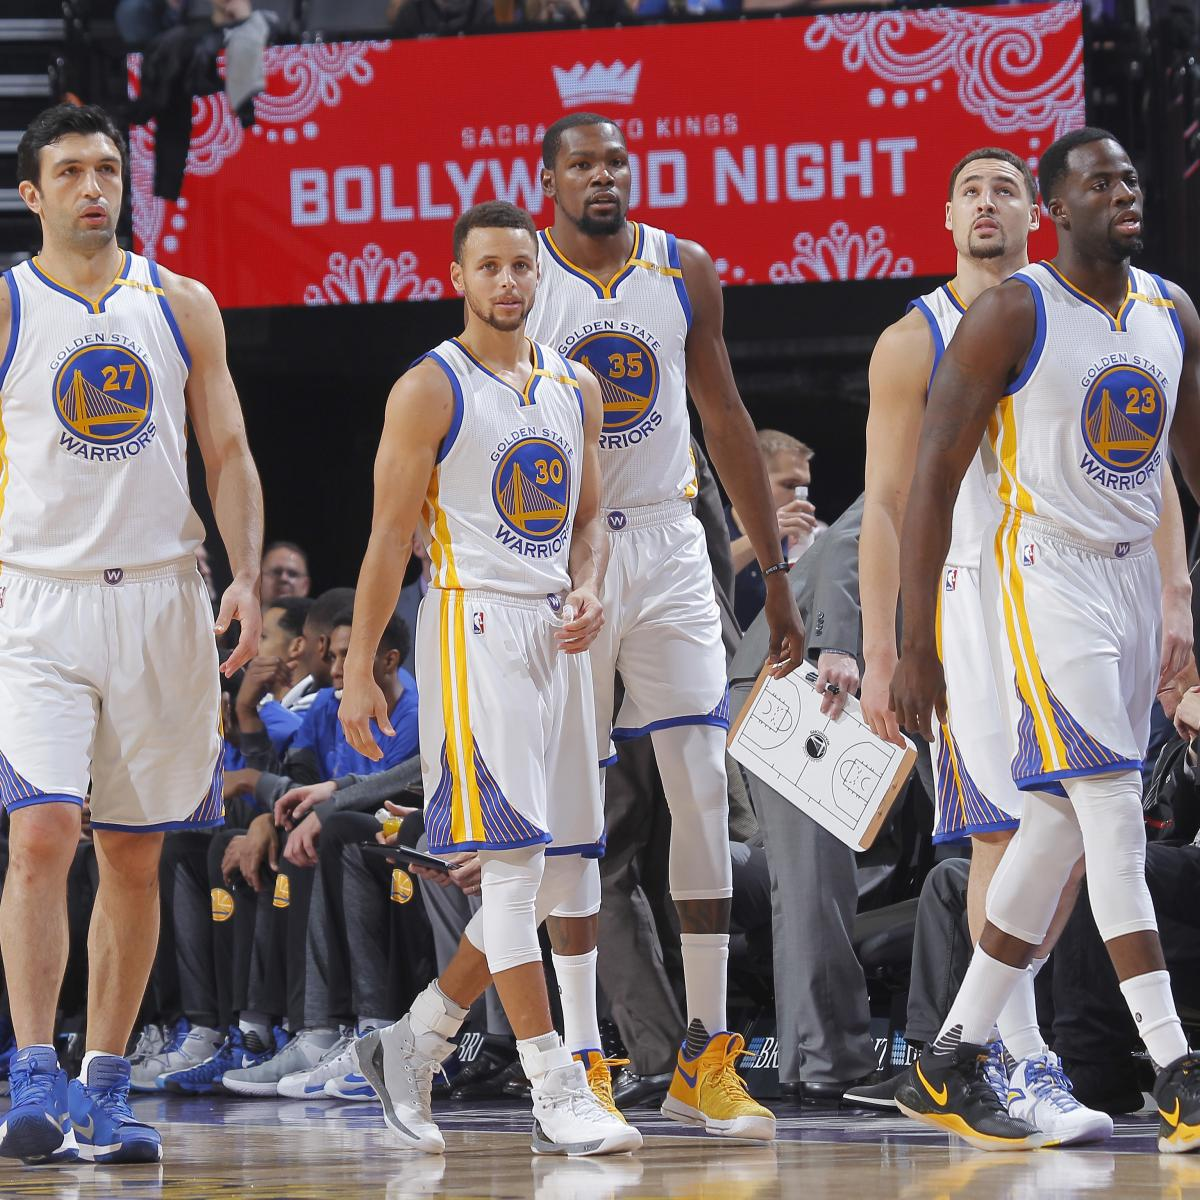 Warriors Come Out To Play Bleacher Report: Golden State Warriors Clinch No. 1 Seed In Western